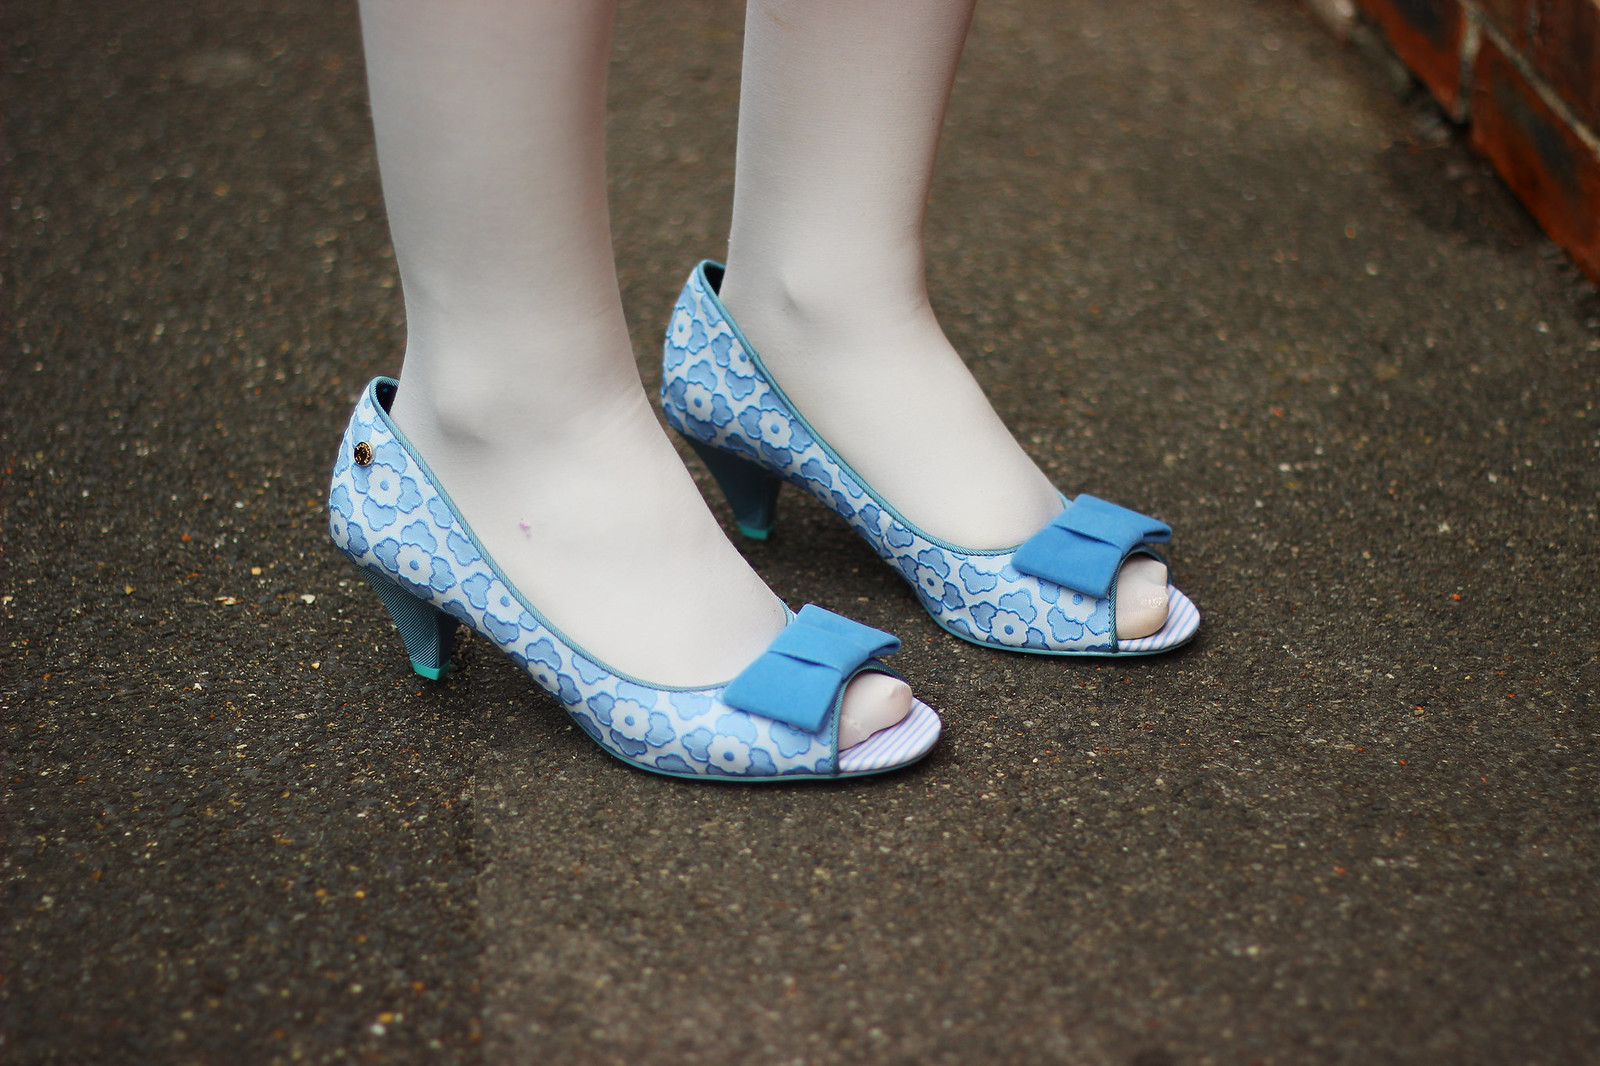 7-babycham shoes